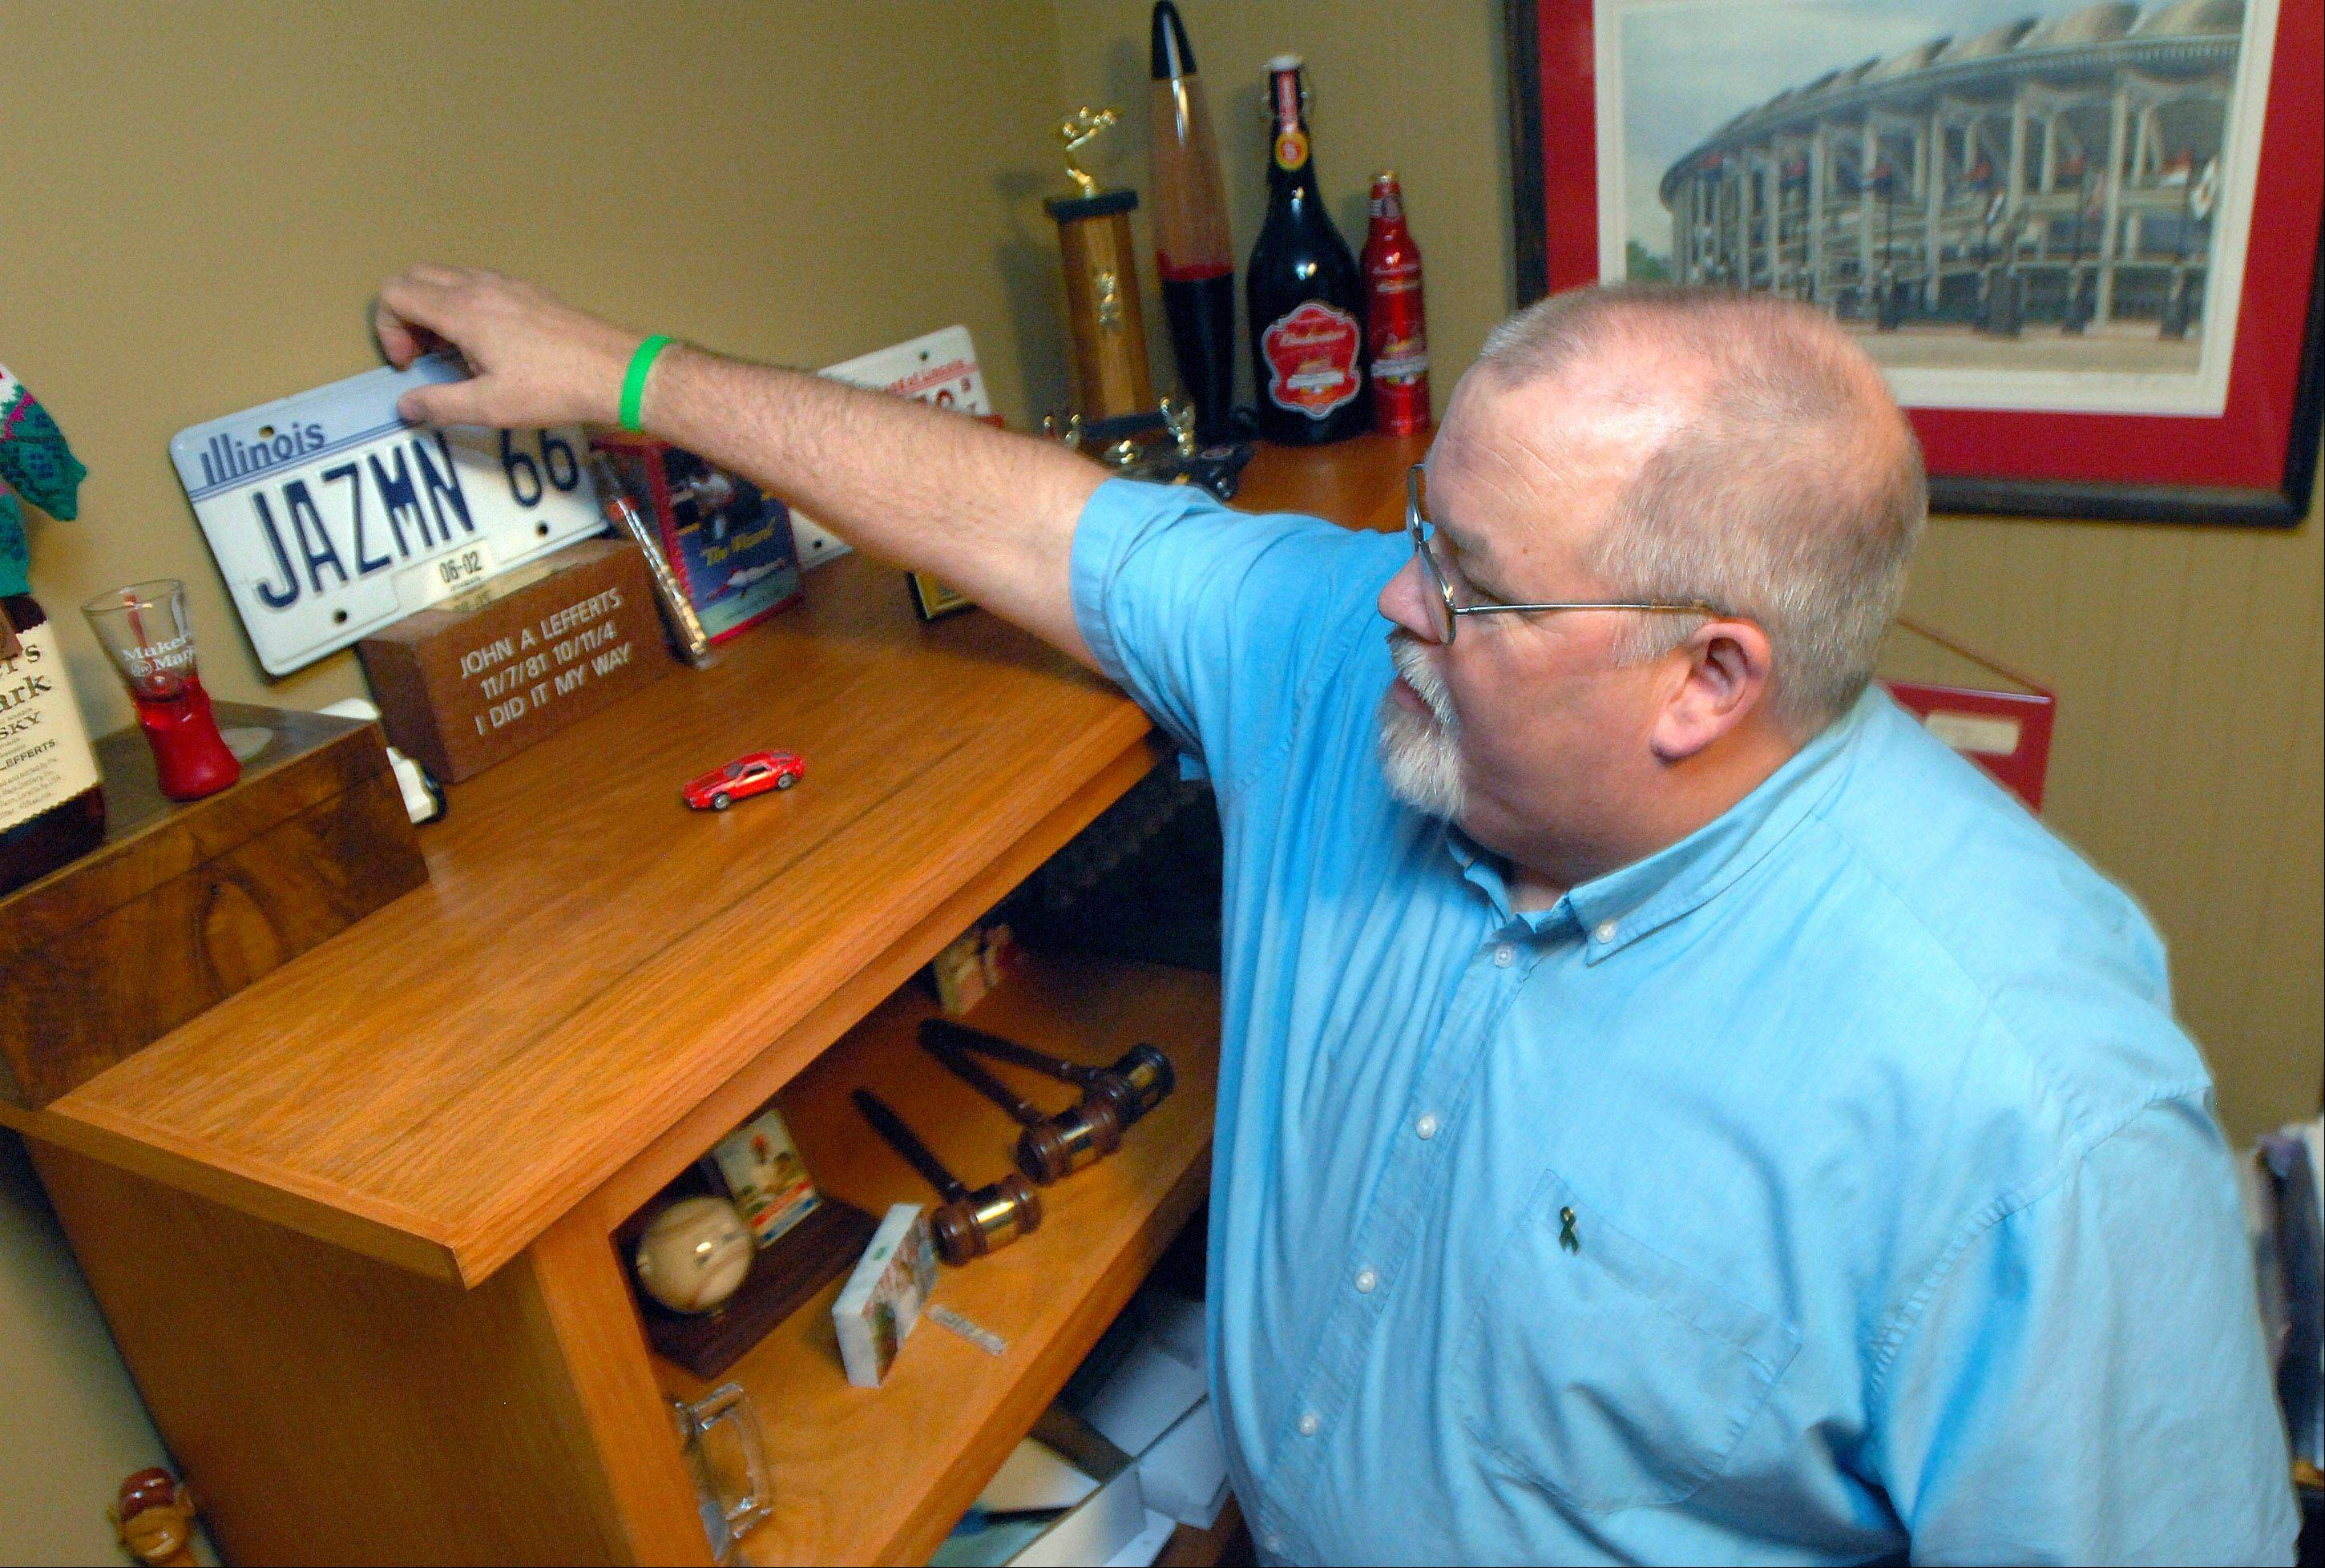 Larry Lefferts examines odds and ends that belonged to his son, John, on a bookcase in his office. John died suddenly and unexpectedly of an aortic dissection at age 22. More than 37 people have received tissue donations following his death. The Lefferts' believe that by choosing the path of tissue donation they are keeping their son's memory alive by helping others live.